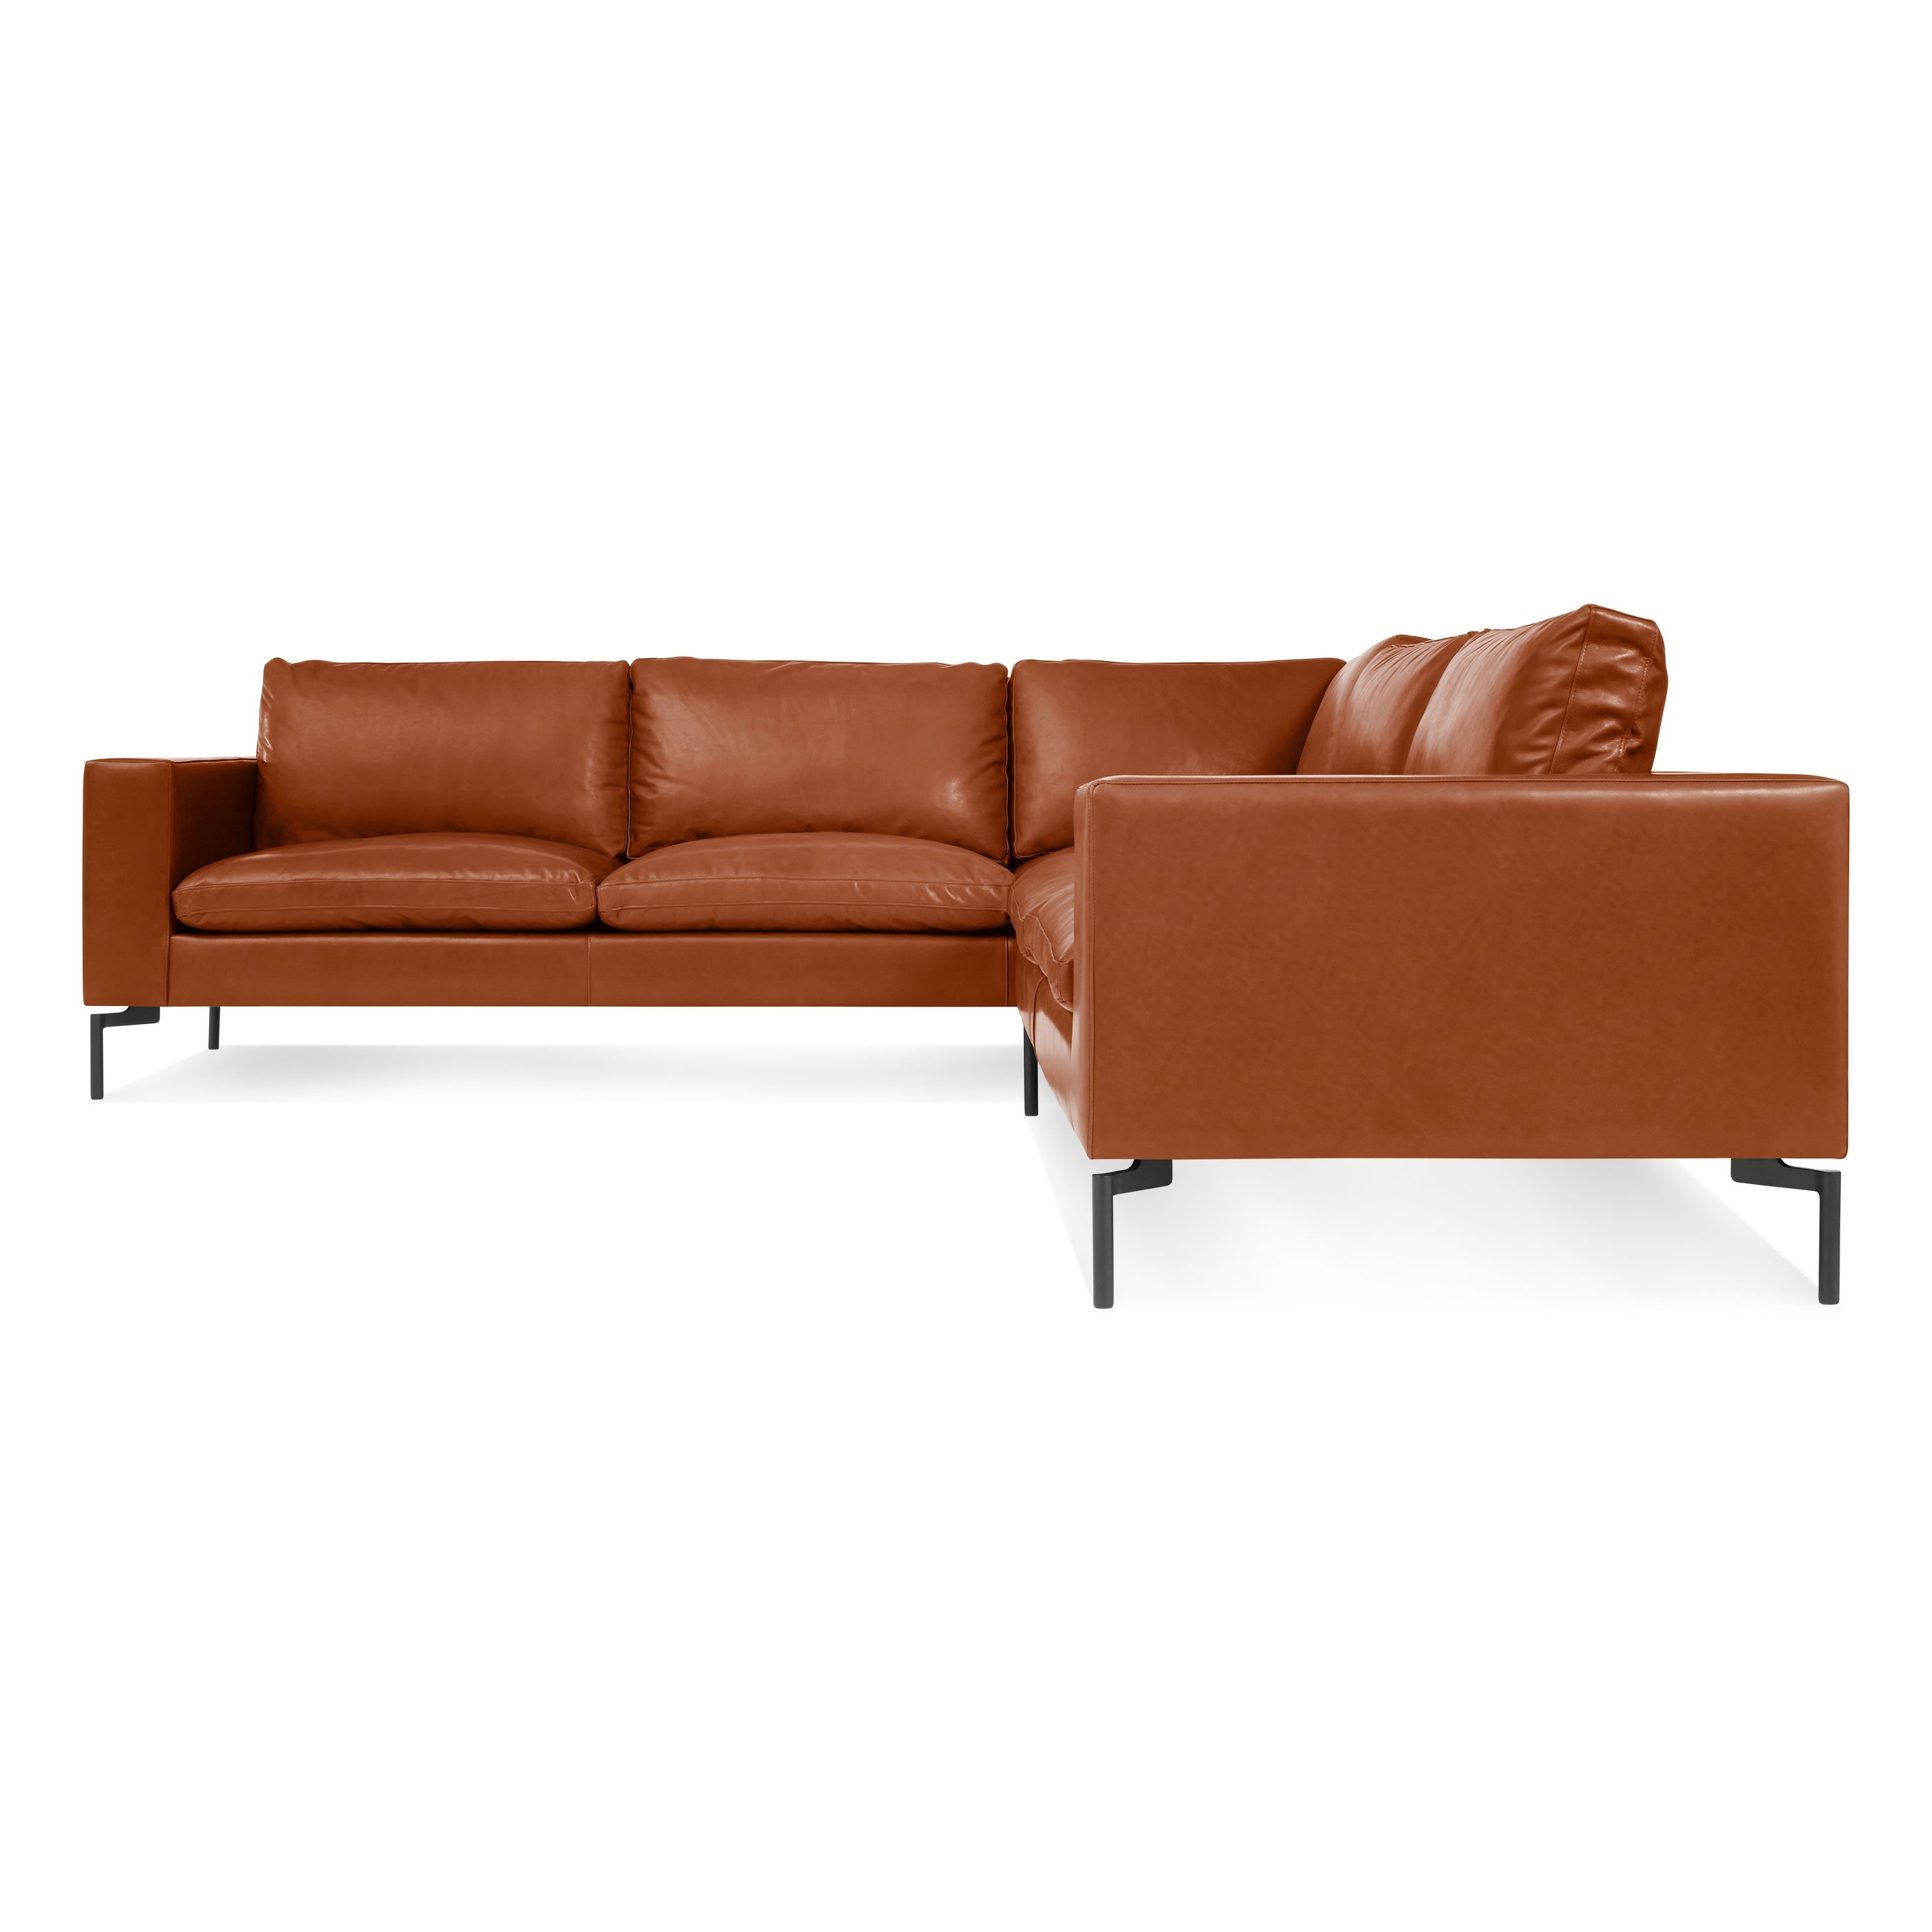 Newfoundland Sectional Sofas In Best And Newest New Standard Small Leather Sectional – Modern Leather Sofa (View 11 of 20)